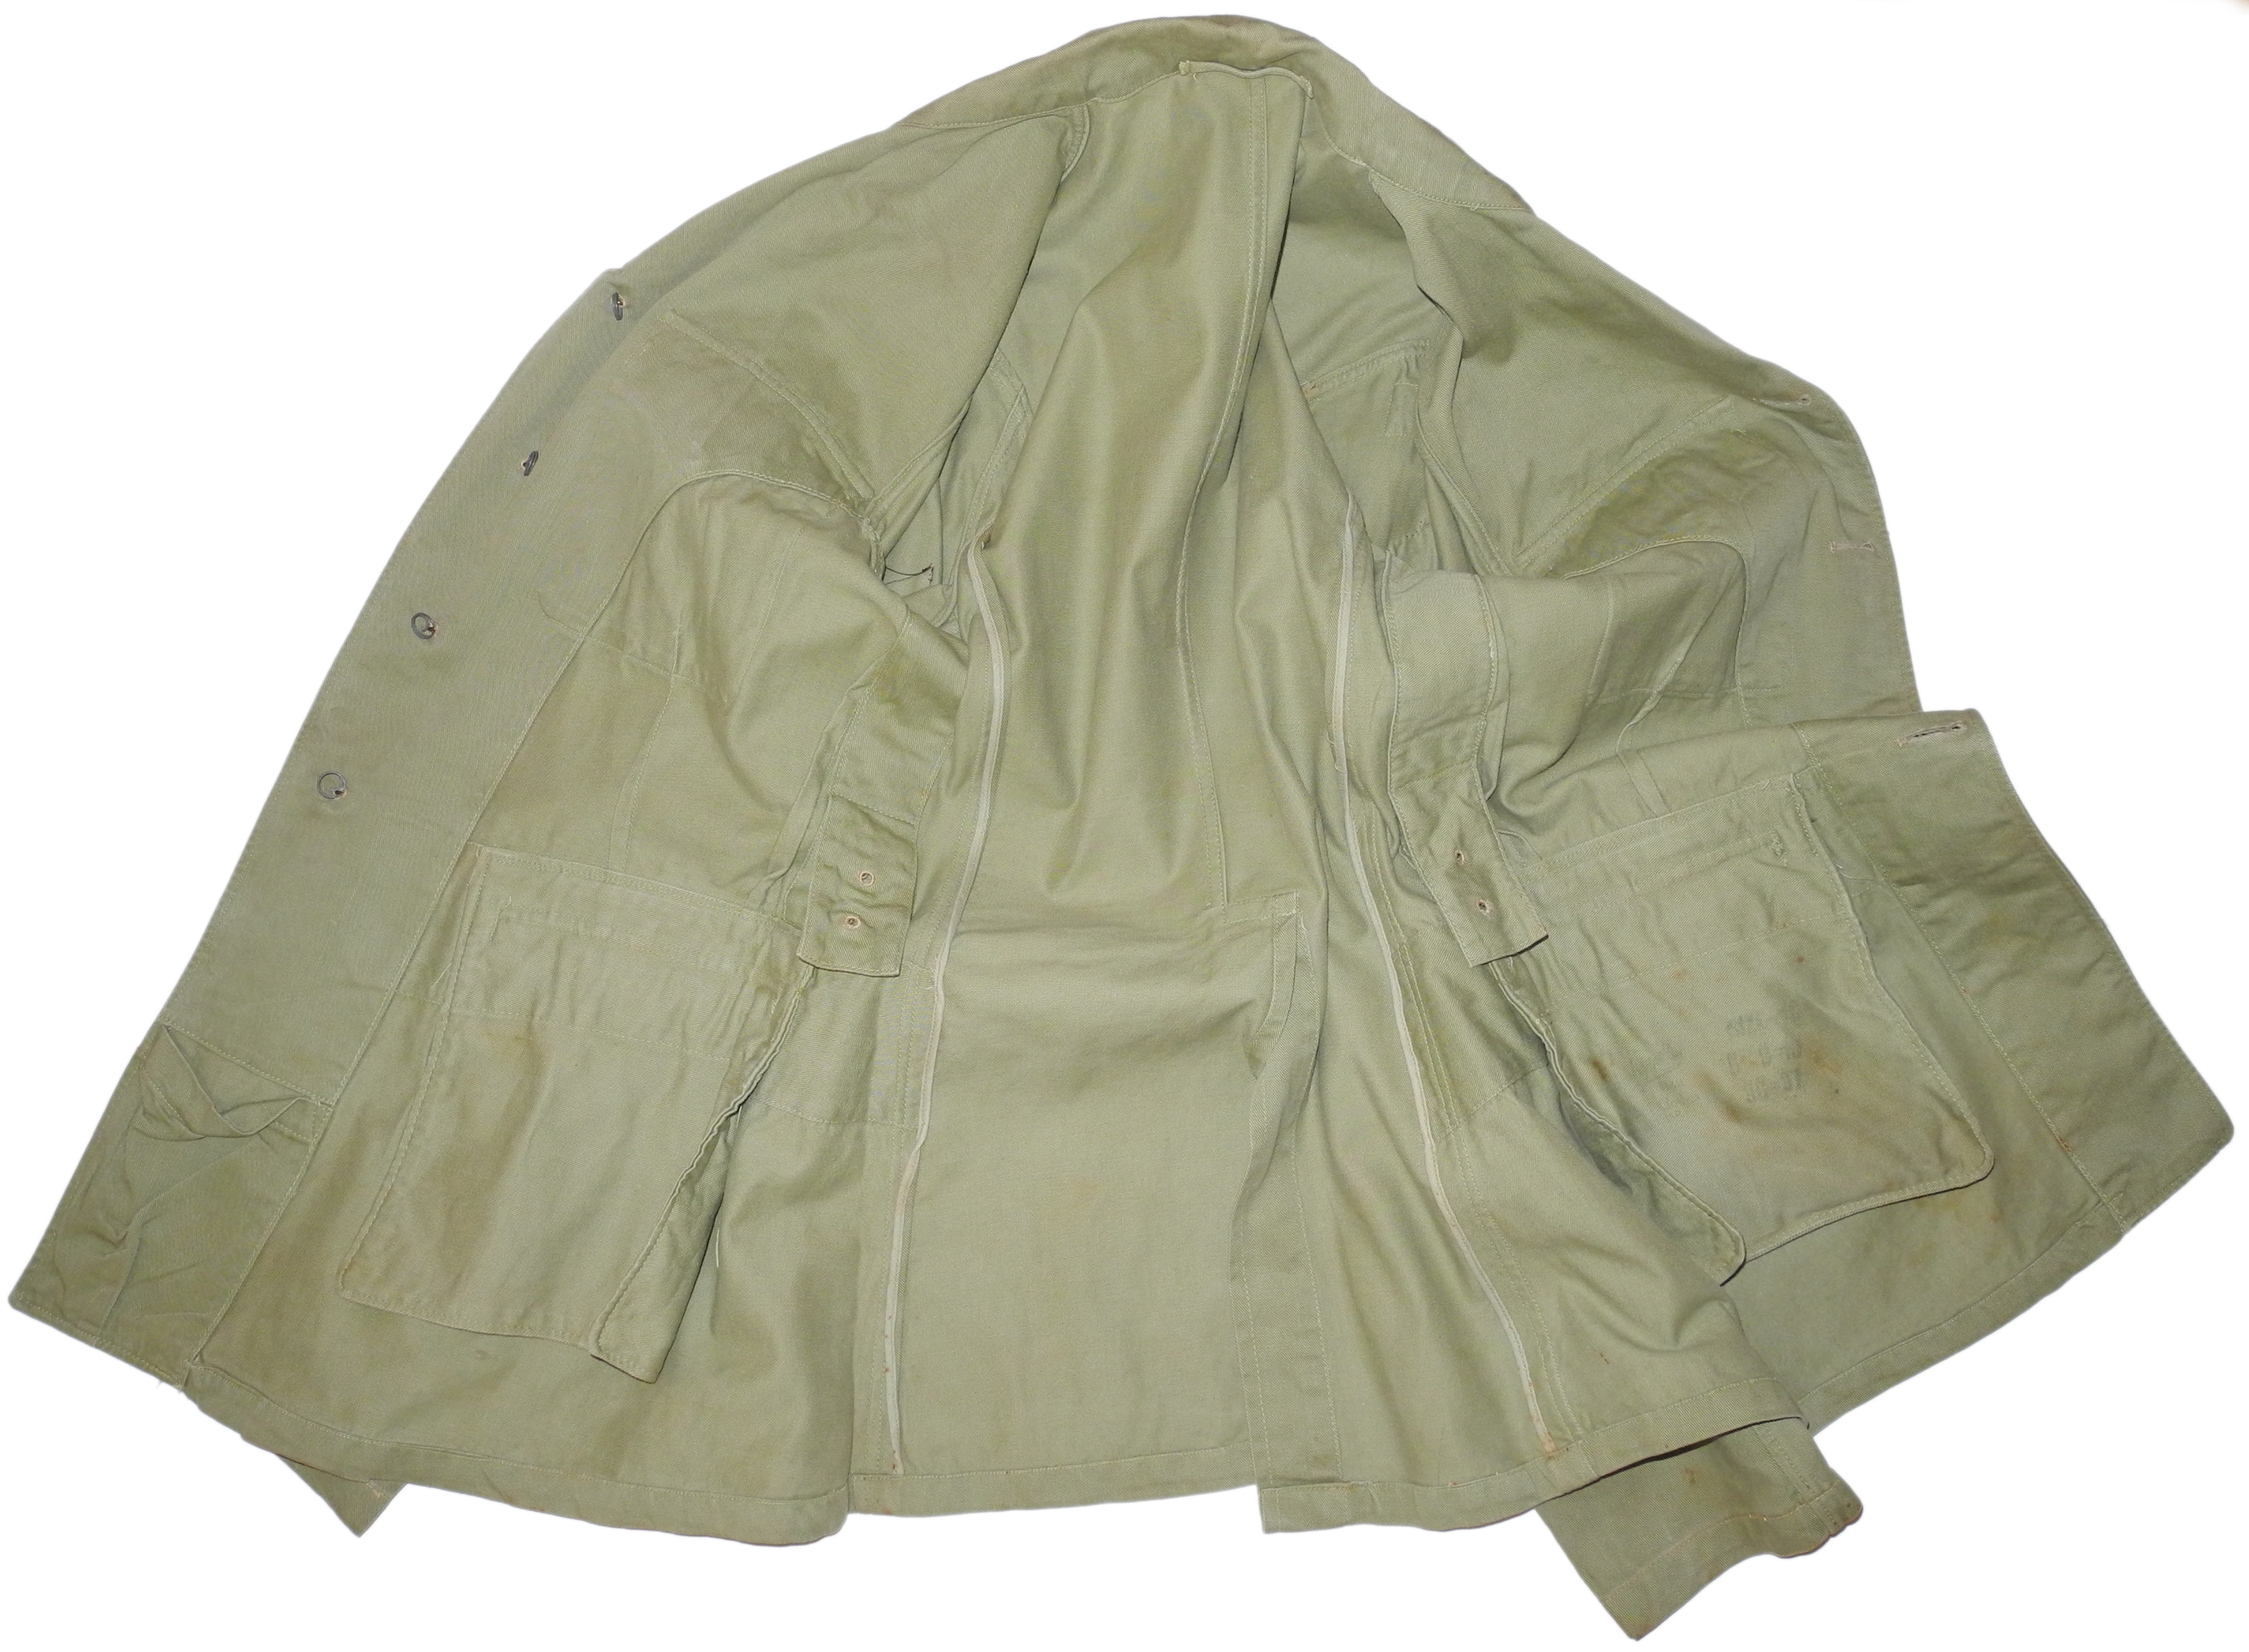 RCAF Khaki Dress jacket for Flight Sergeant